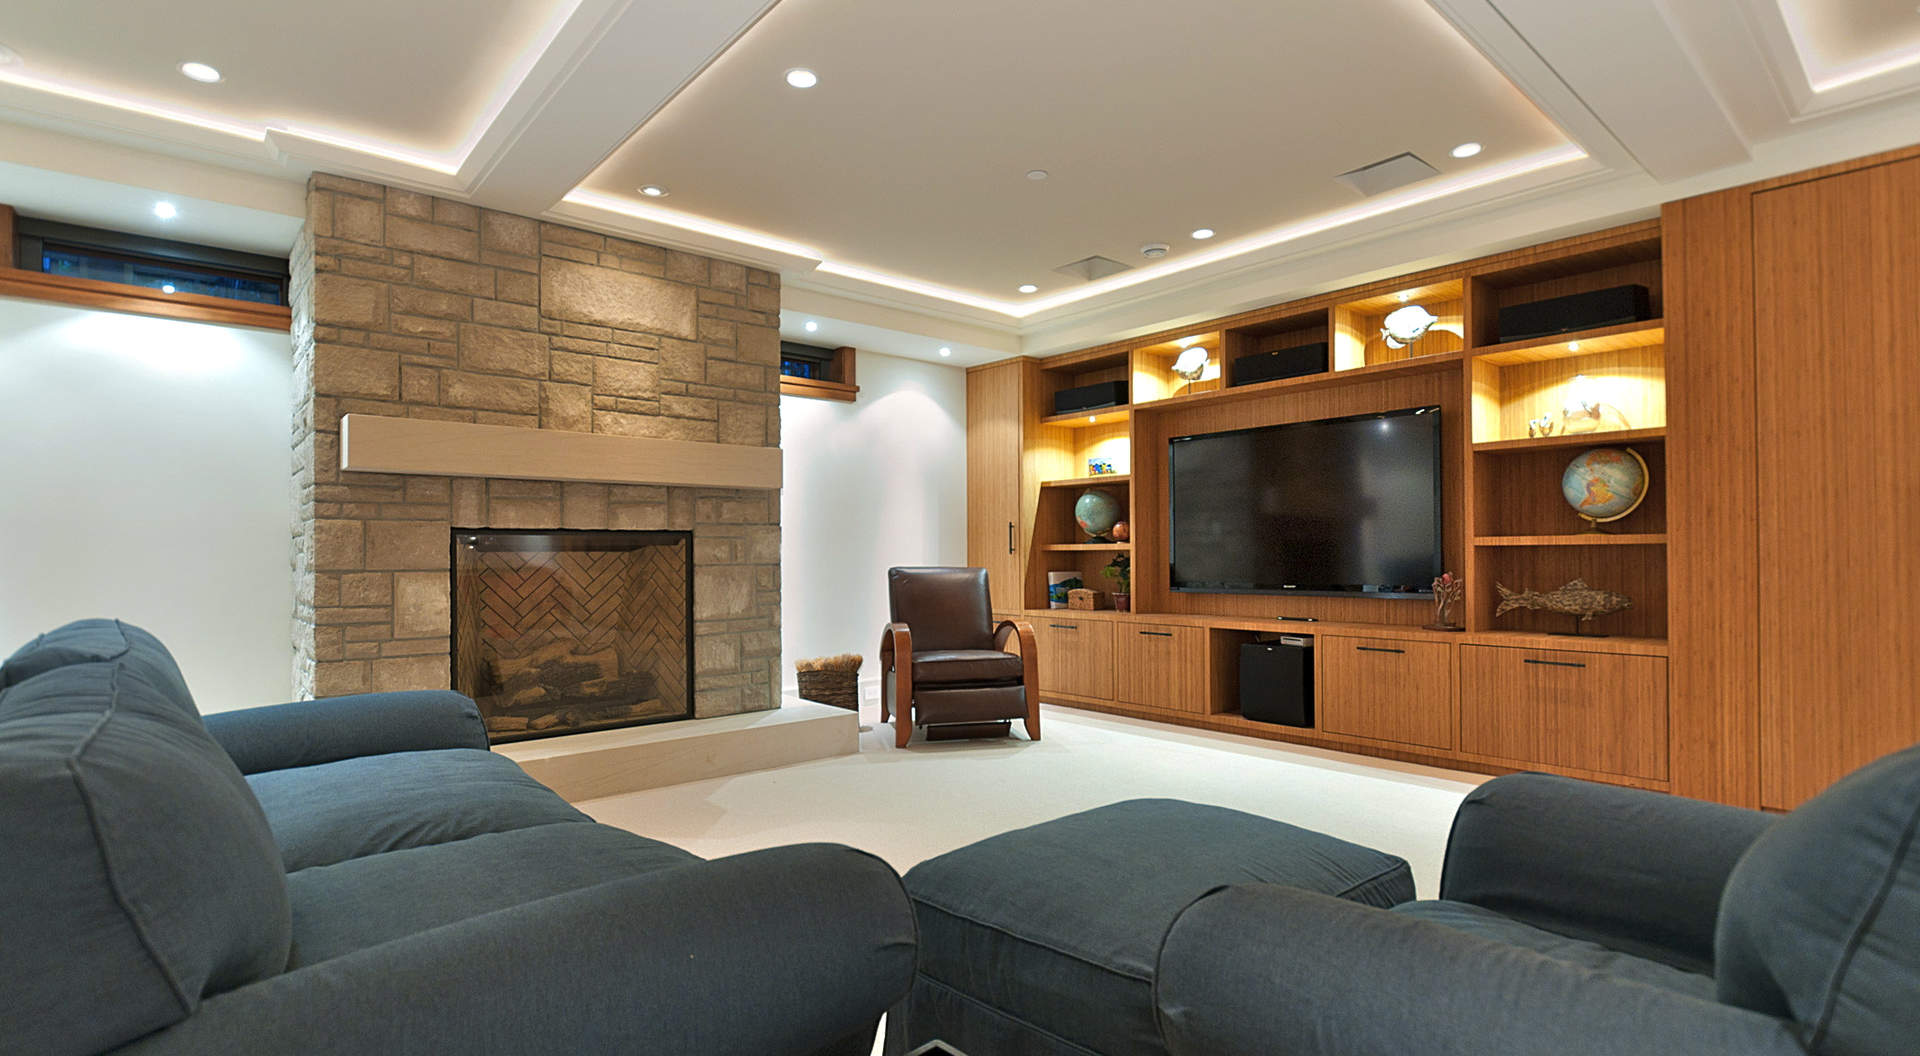 An Amazing Media Room with Fireplace & Custom Cabinetry